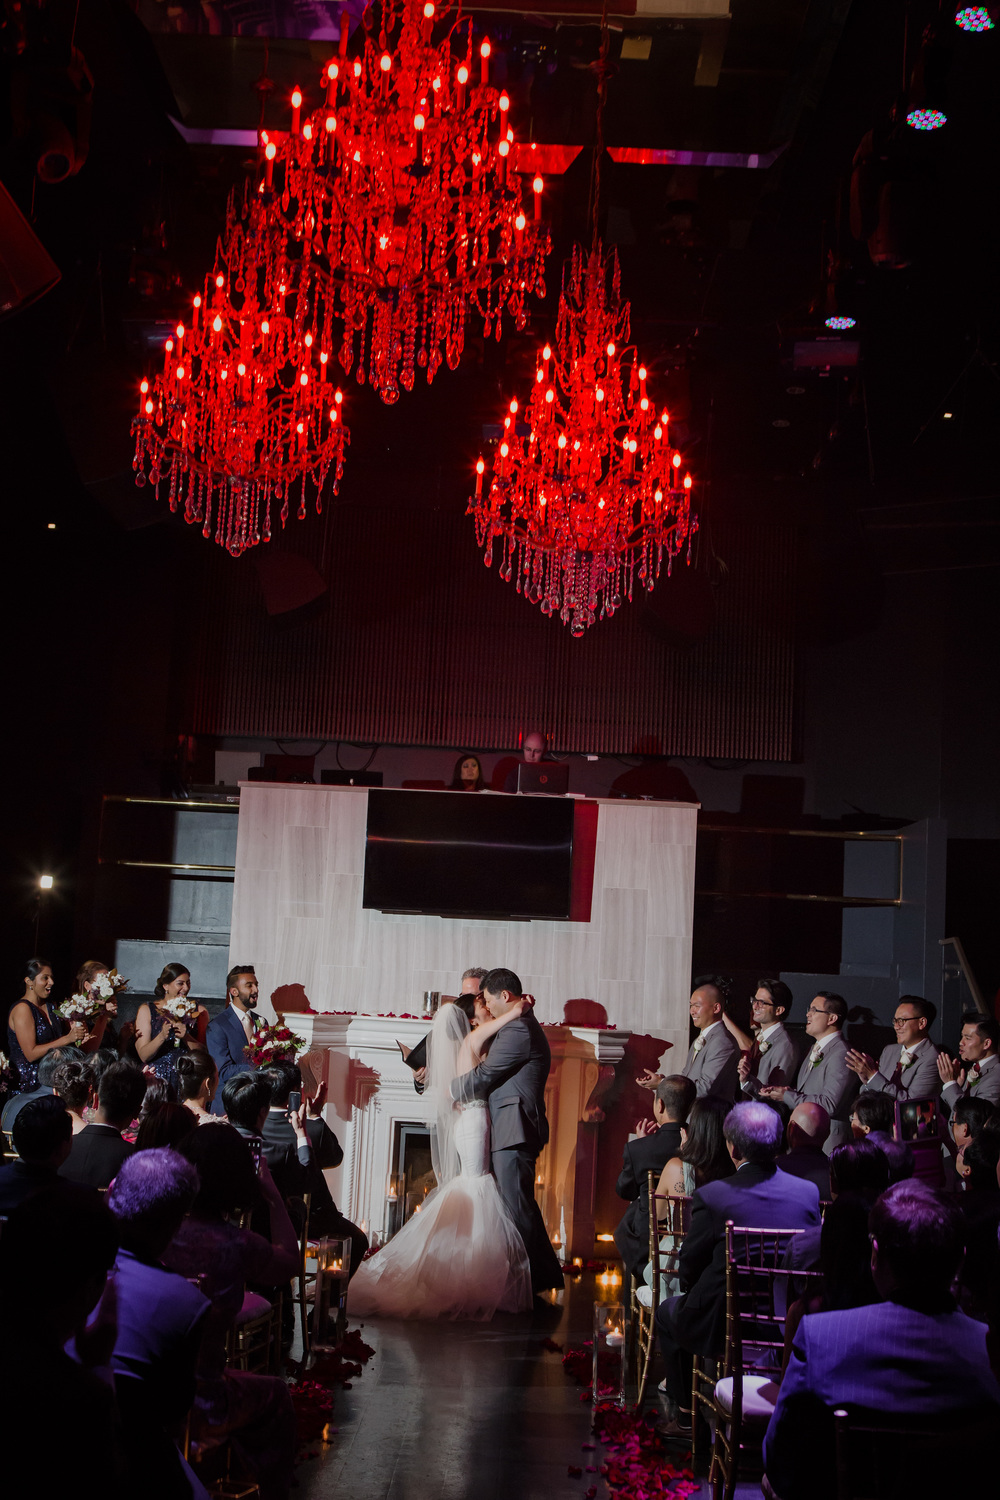 The first kiss at Chateau Nightclub in Las Vegas.   Vendor Credit:  Venue: Paris Hotel Las Vegas and Chateau | Las Vegas Wedding Planner Andrea Eppolito | Photo: Adam Frazier Photography | Decor: Naakiti Floral | Beauty: Make Up in the 702